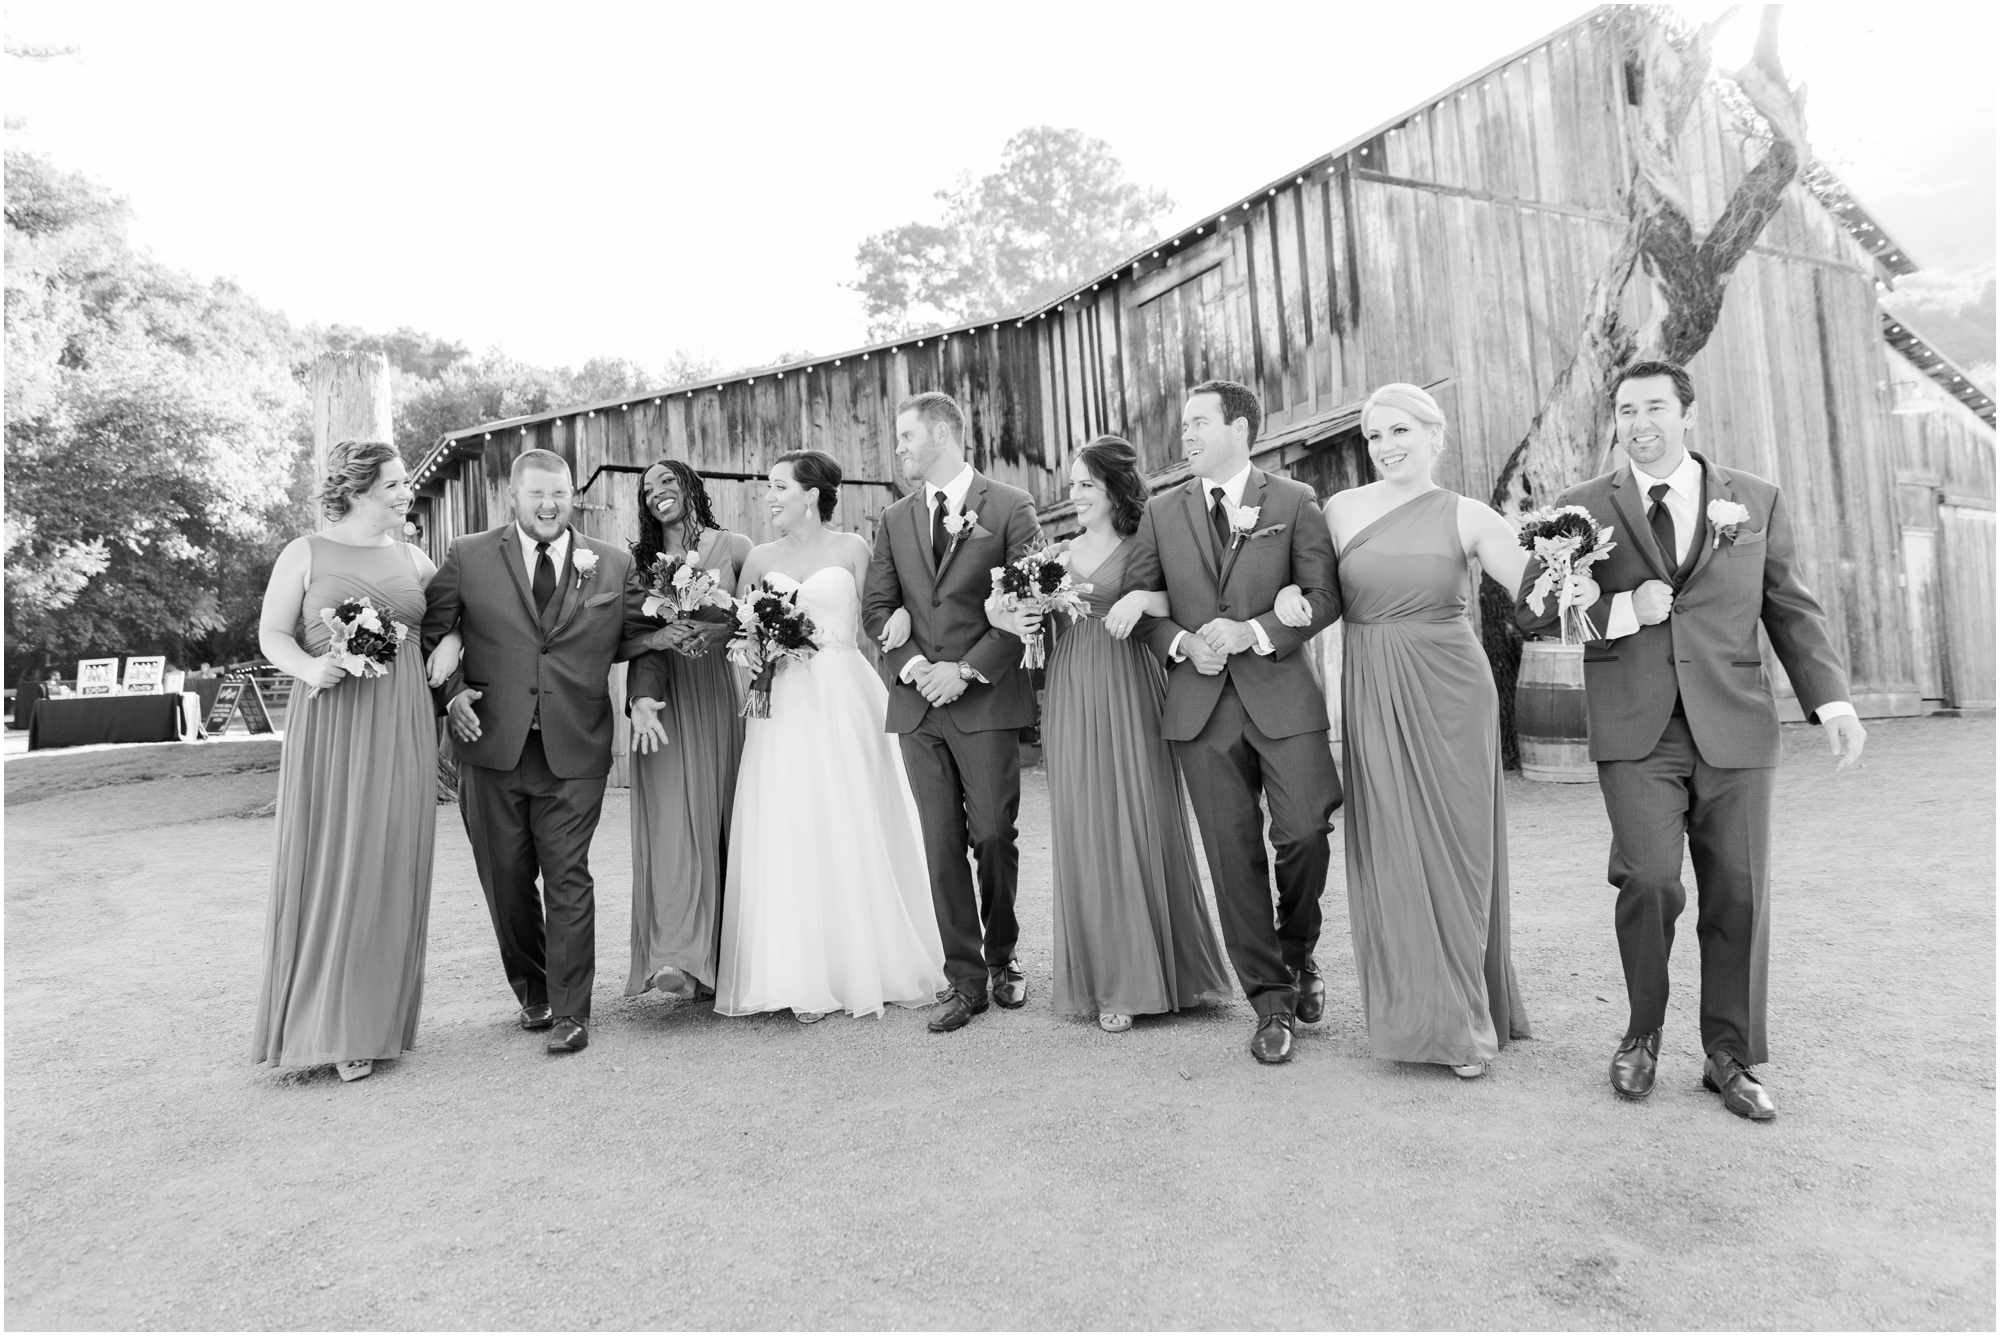 Picchetti Winery wedding pictures by Briana Calderon Photography_0446.jpg